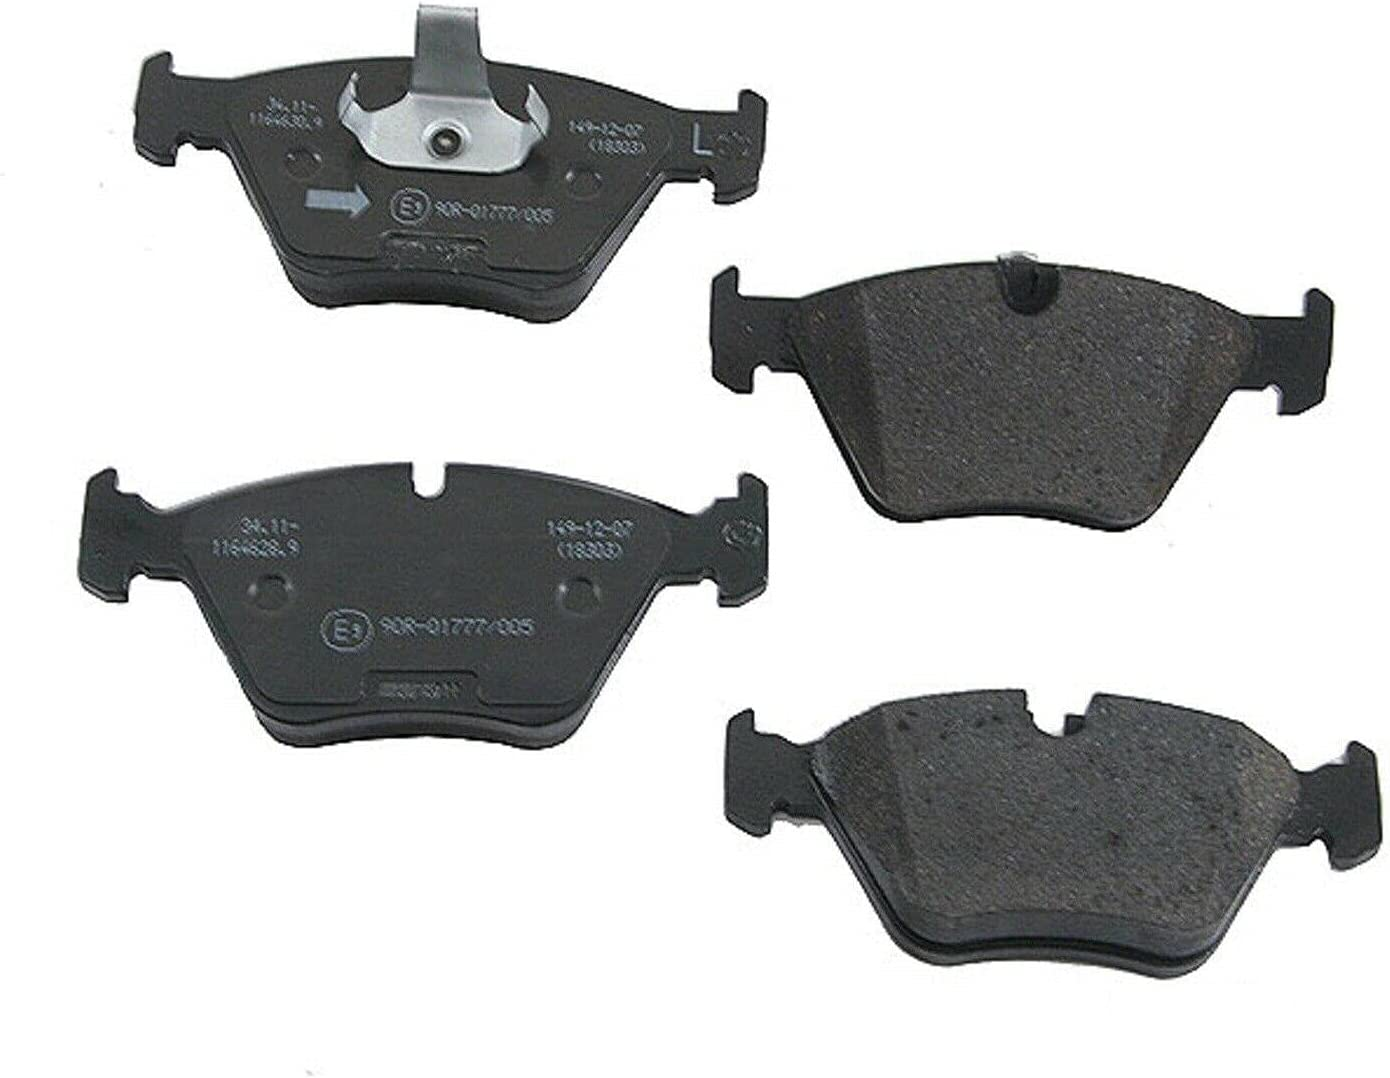 Front Brake Pad Set Compatible with Max 55% OFF BMW 1997-2003 528i E39 525i Colorado Springs Mall